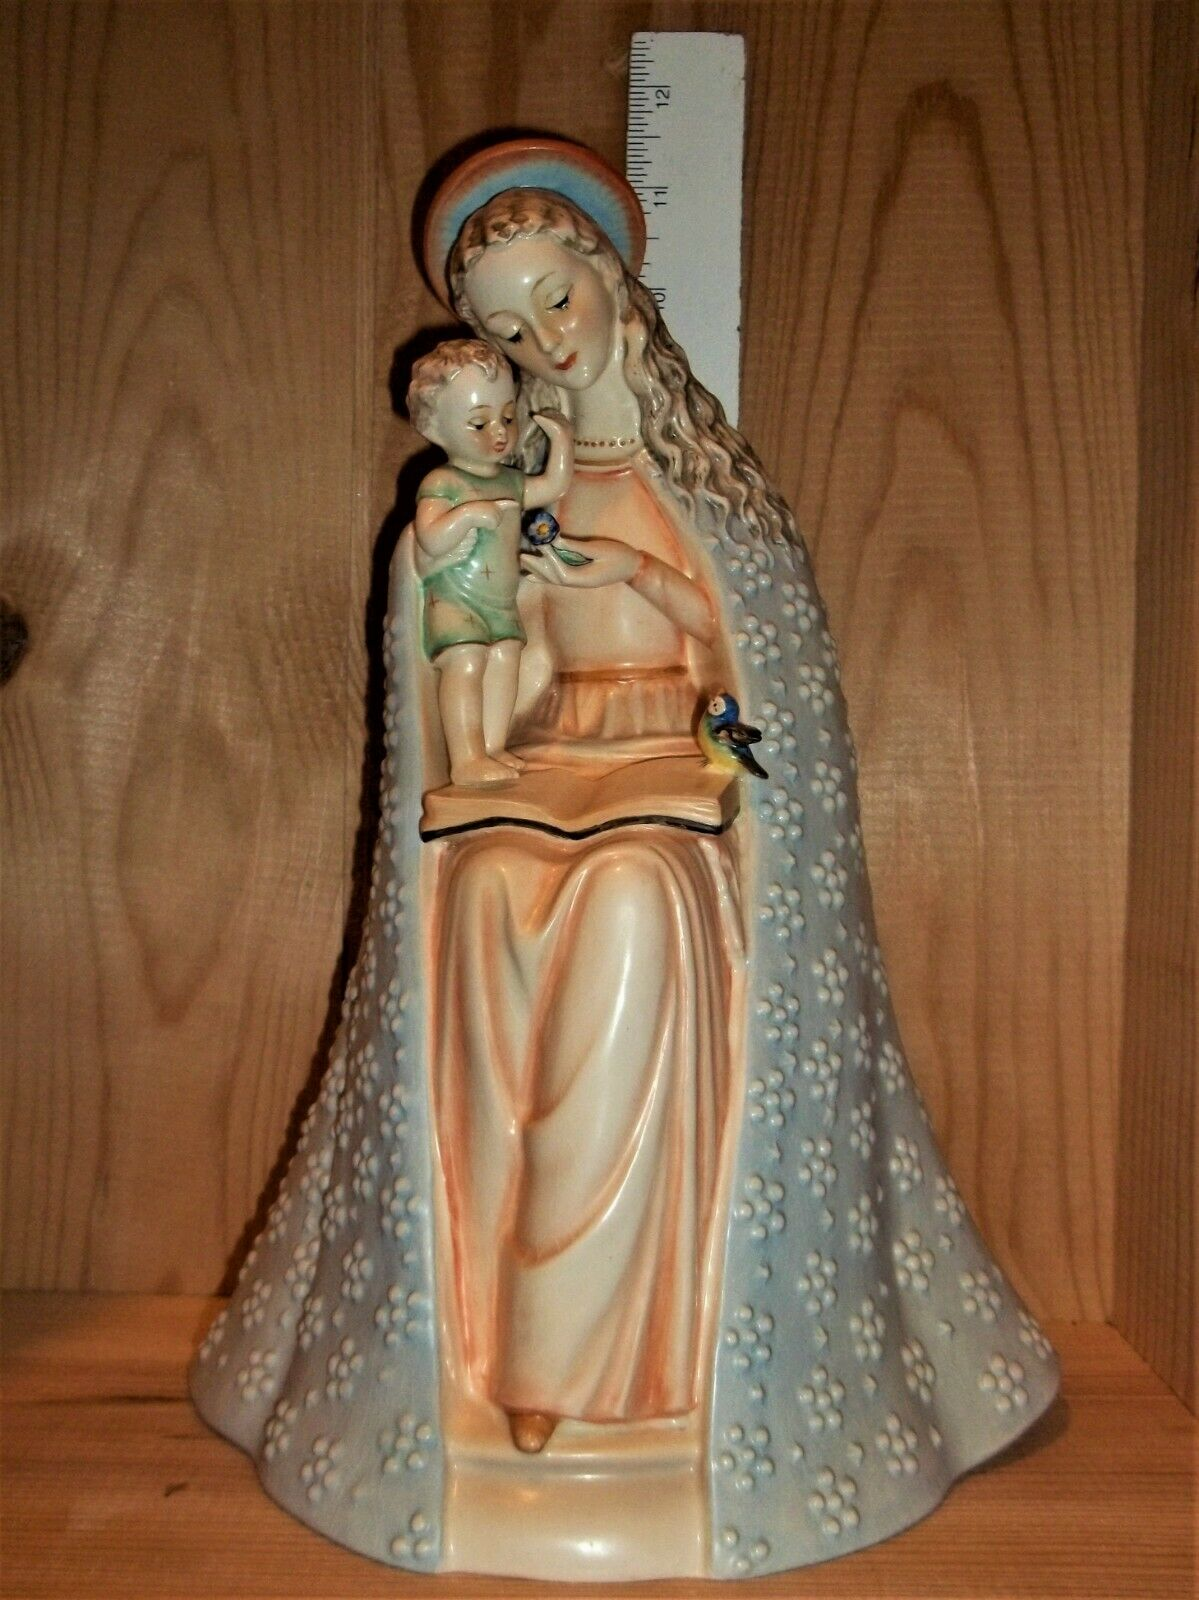 Hummel Flower Madonna Figurine 11 1/2 Tall 10/III-TMK 3 Beautiful  - $220.00